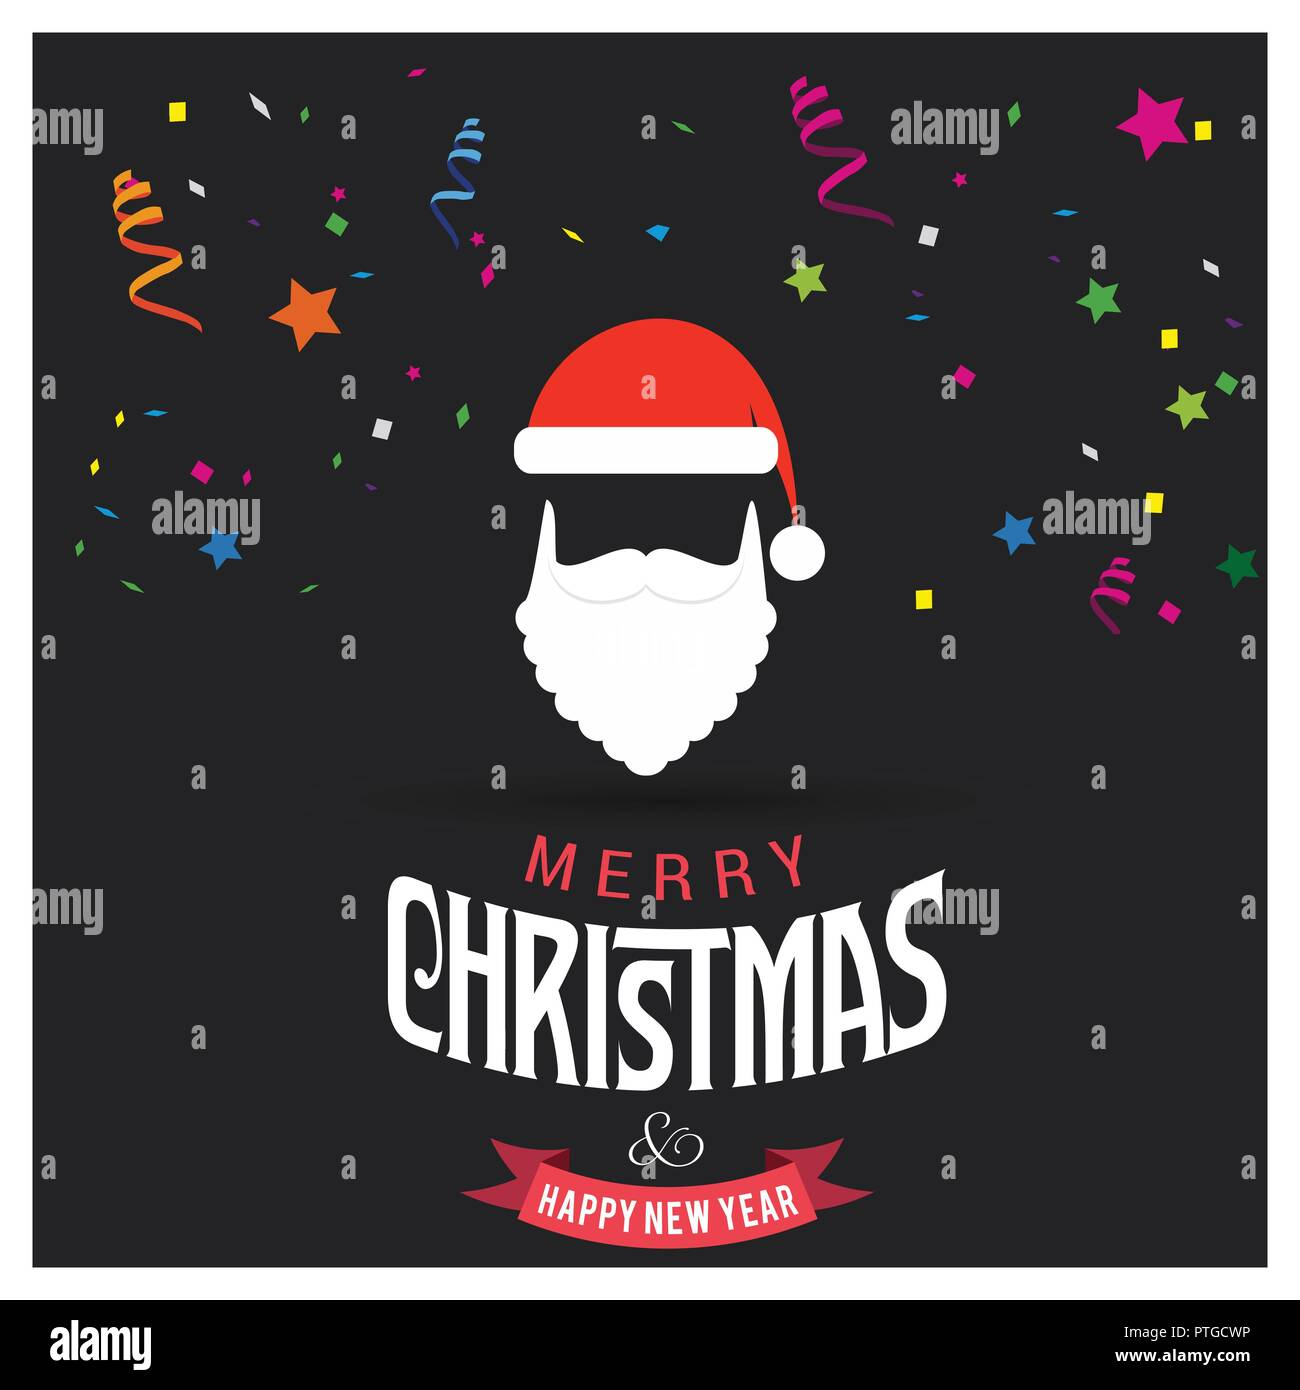 Merry Christmas Card Design With Creative Typography And Dark